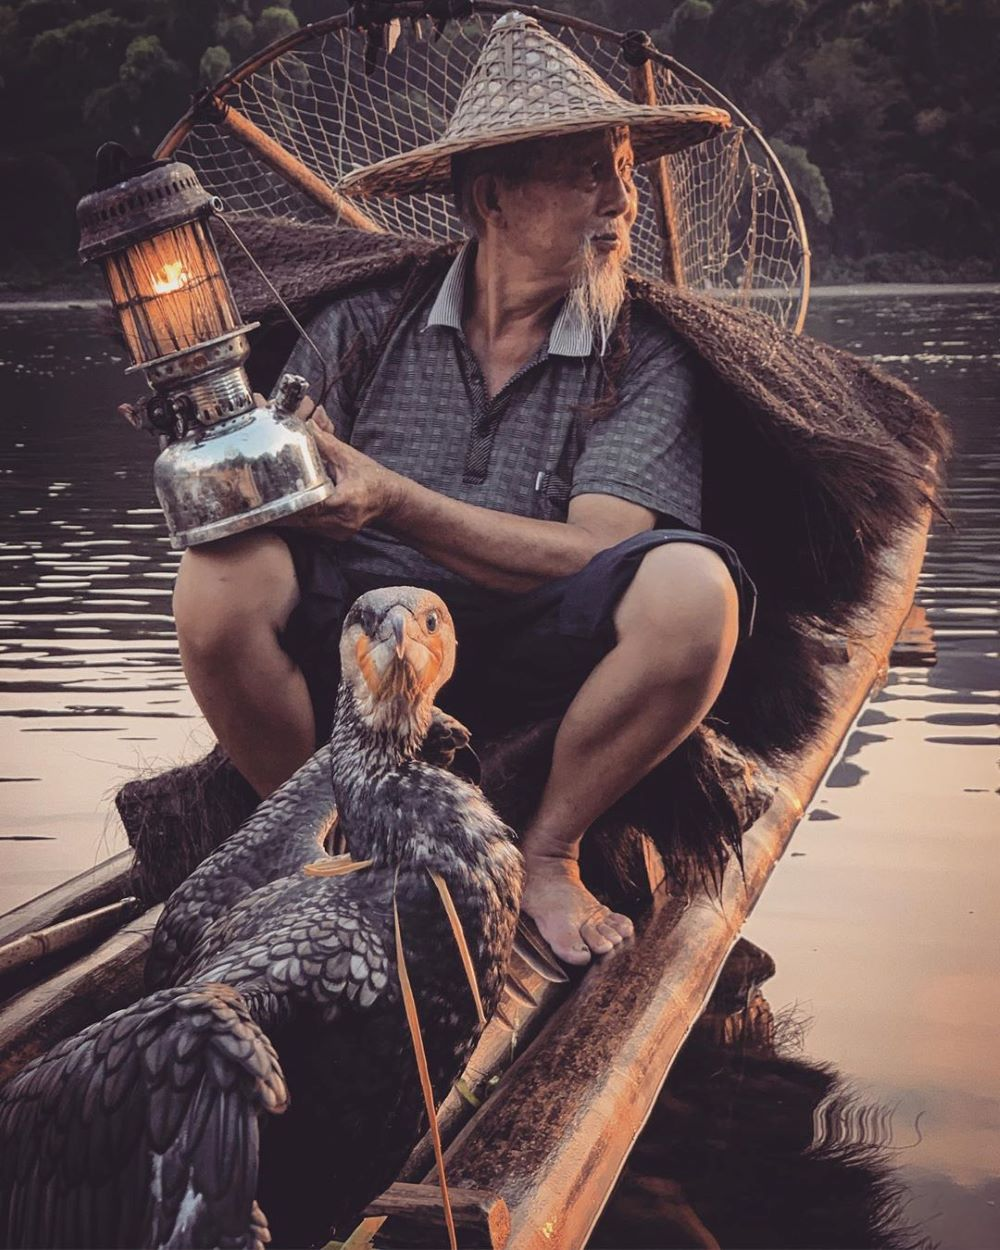 a fisherman with a lantern and a cormorant in a boat on a river outside Yangshuo